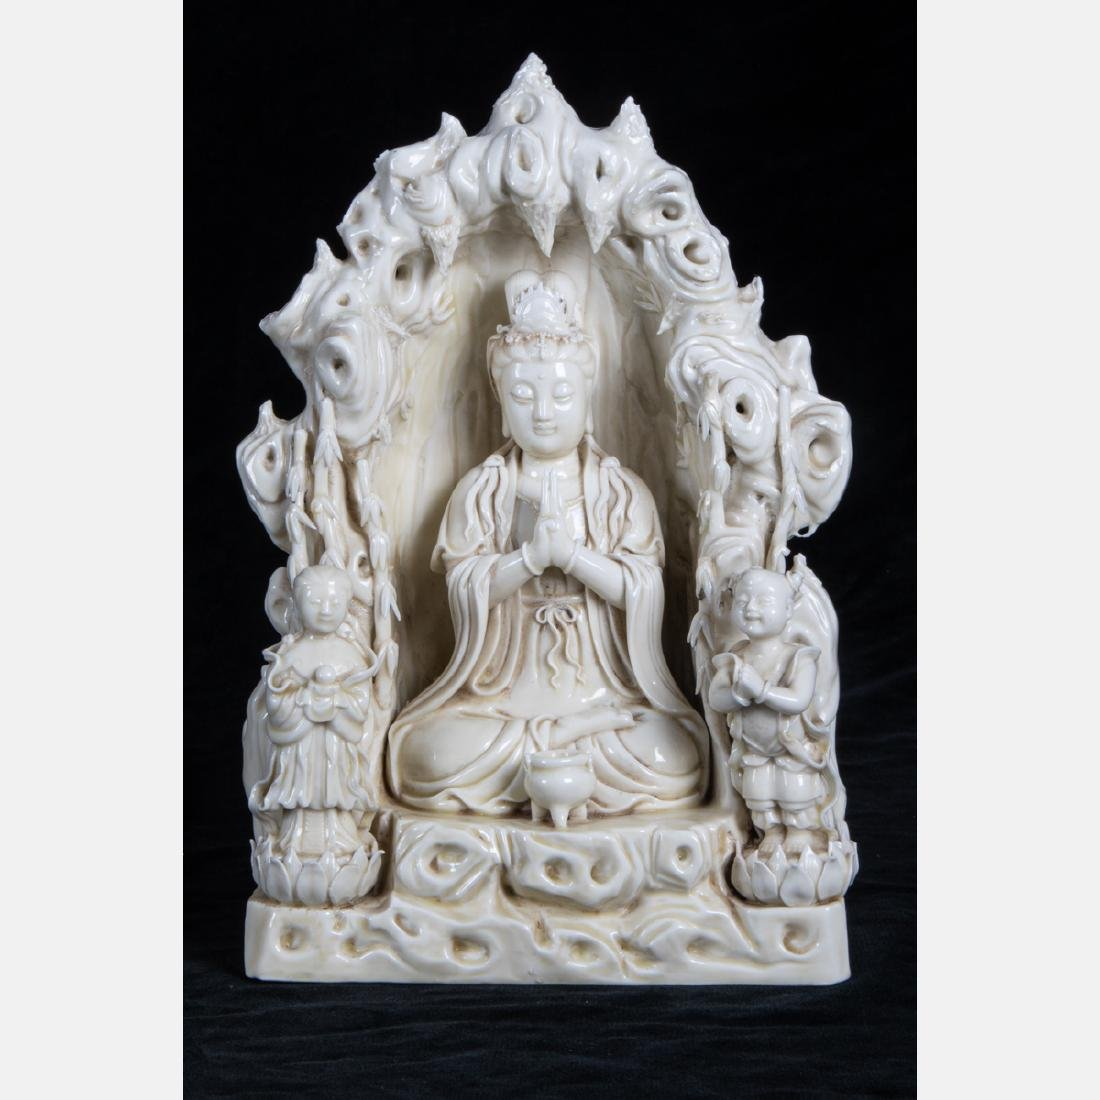 A Chinese Porcelain Blanc de Chine Figure of Guanyin,